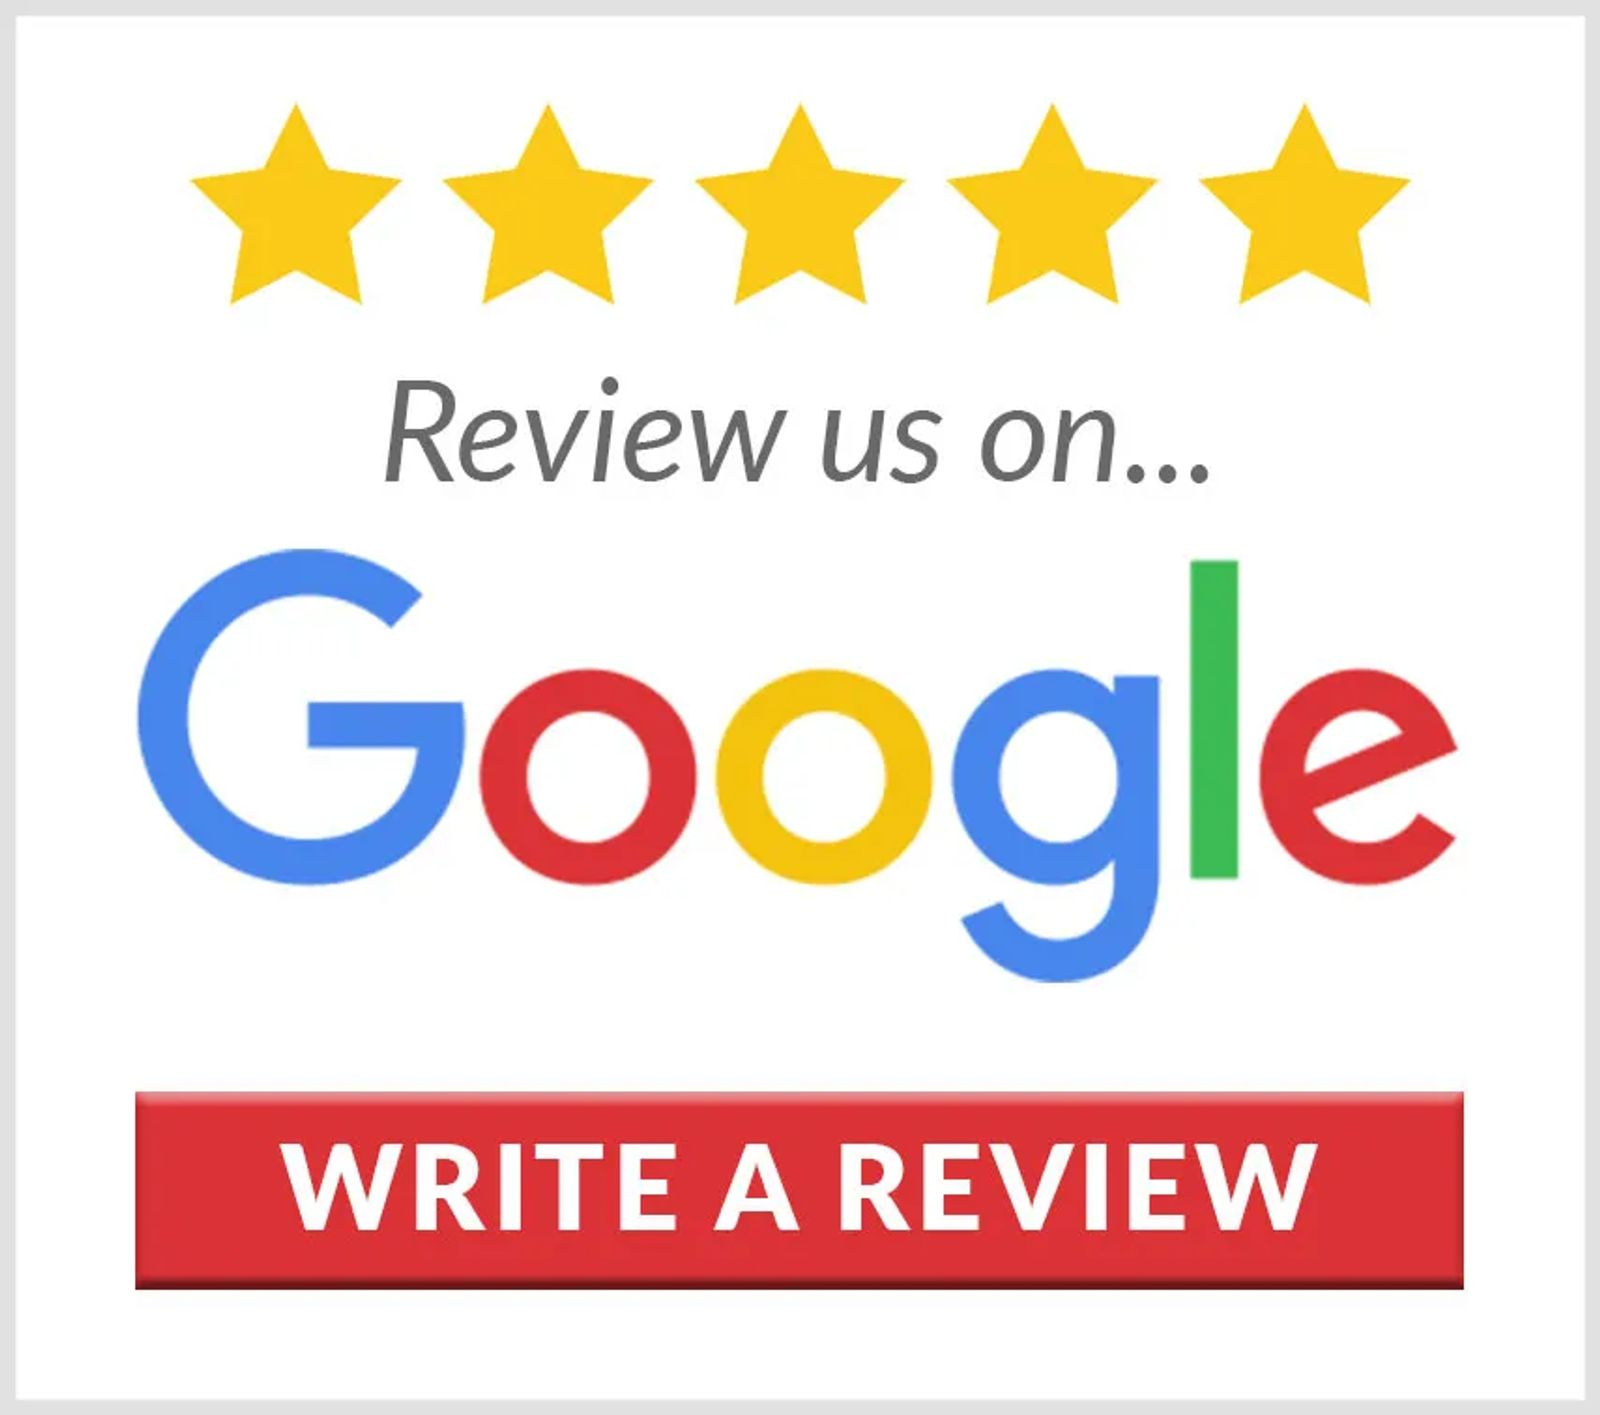 Review Brighten Inc. on Google